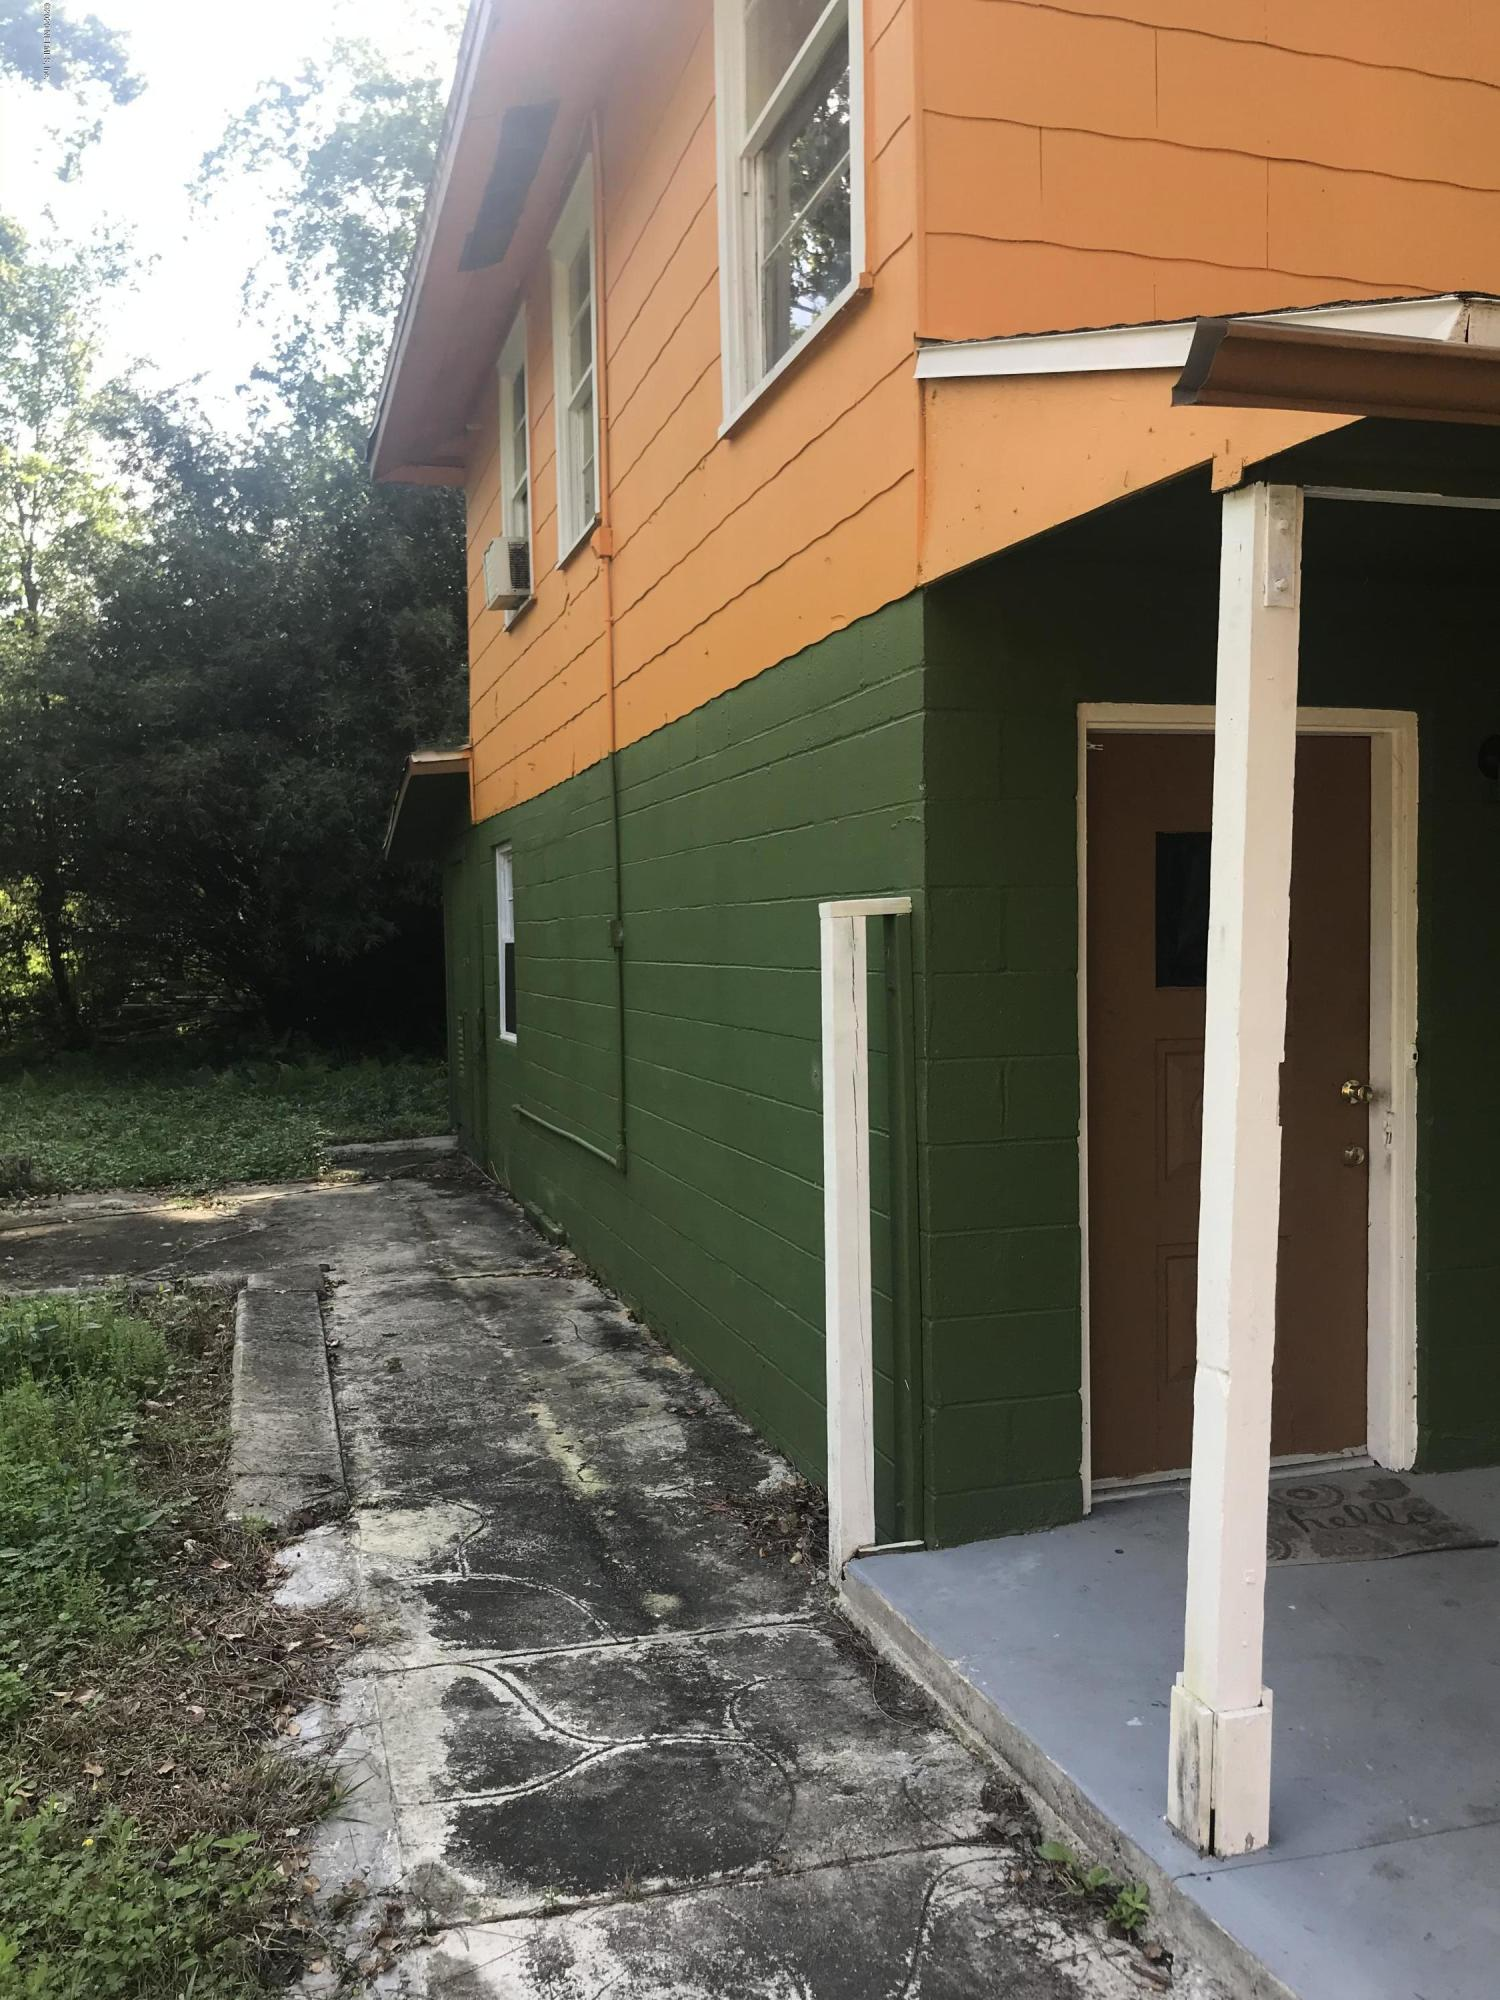 4347 HUDNALL, JACKSONVILLE, FLORIDA 32207, 4 Bedrooms Bedrooms, ,3 BathroomsBathrooms,Investment / MultiFamily,For sale,HUDNALL,1045800